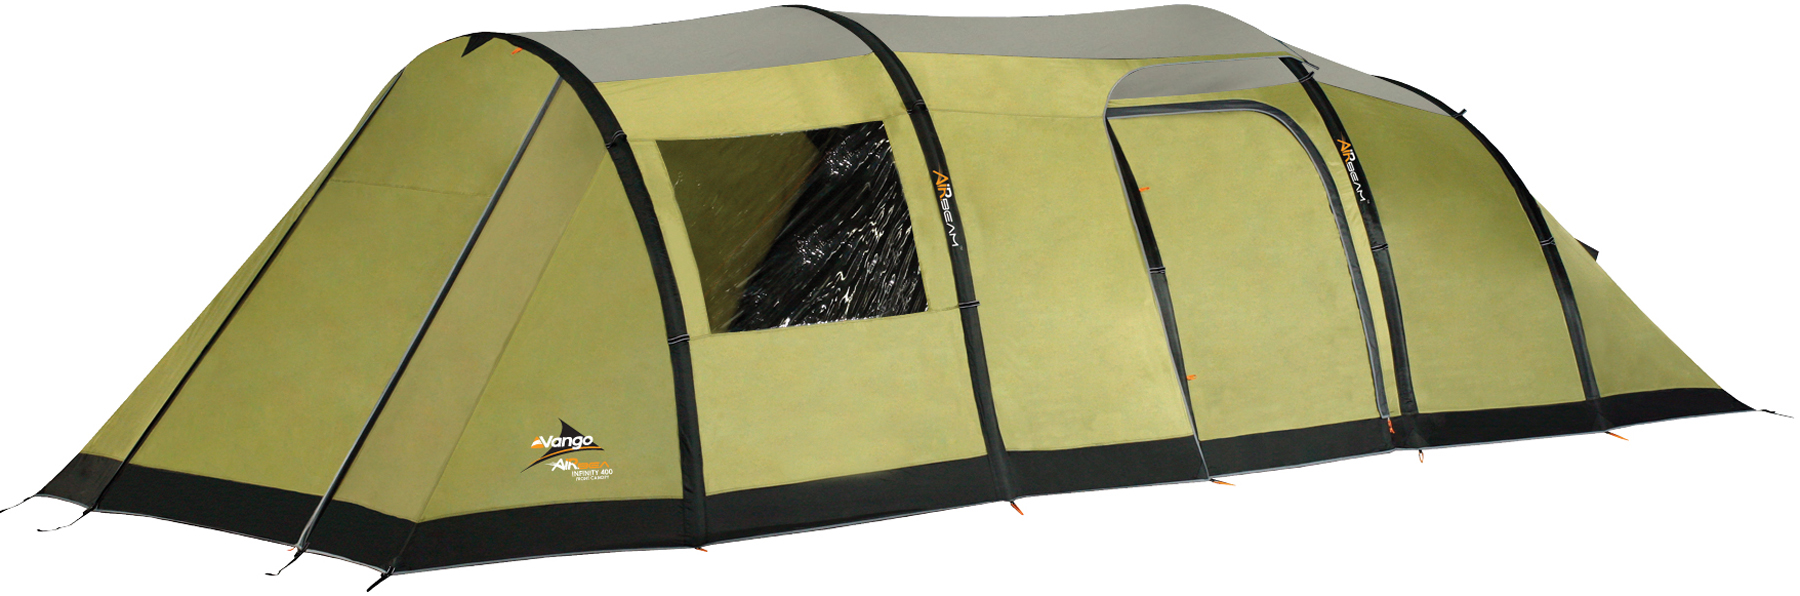 Vango Infinity 400 Front Enclosed Canopy